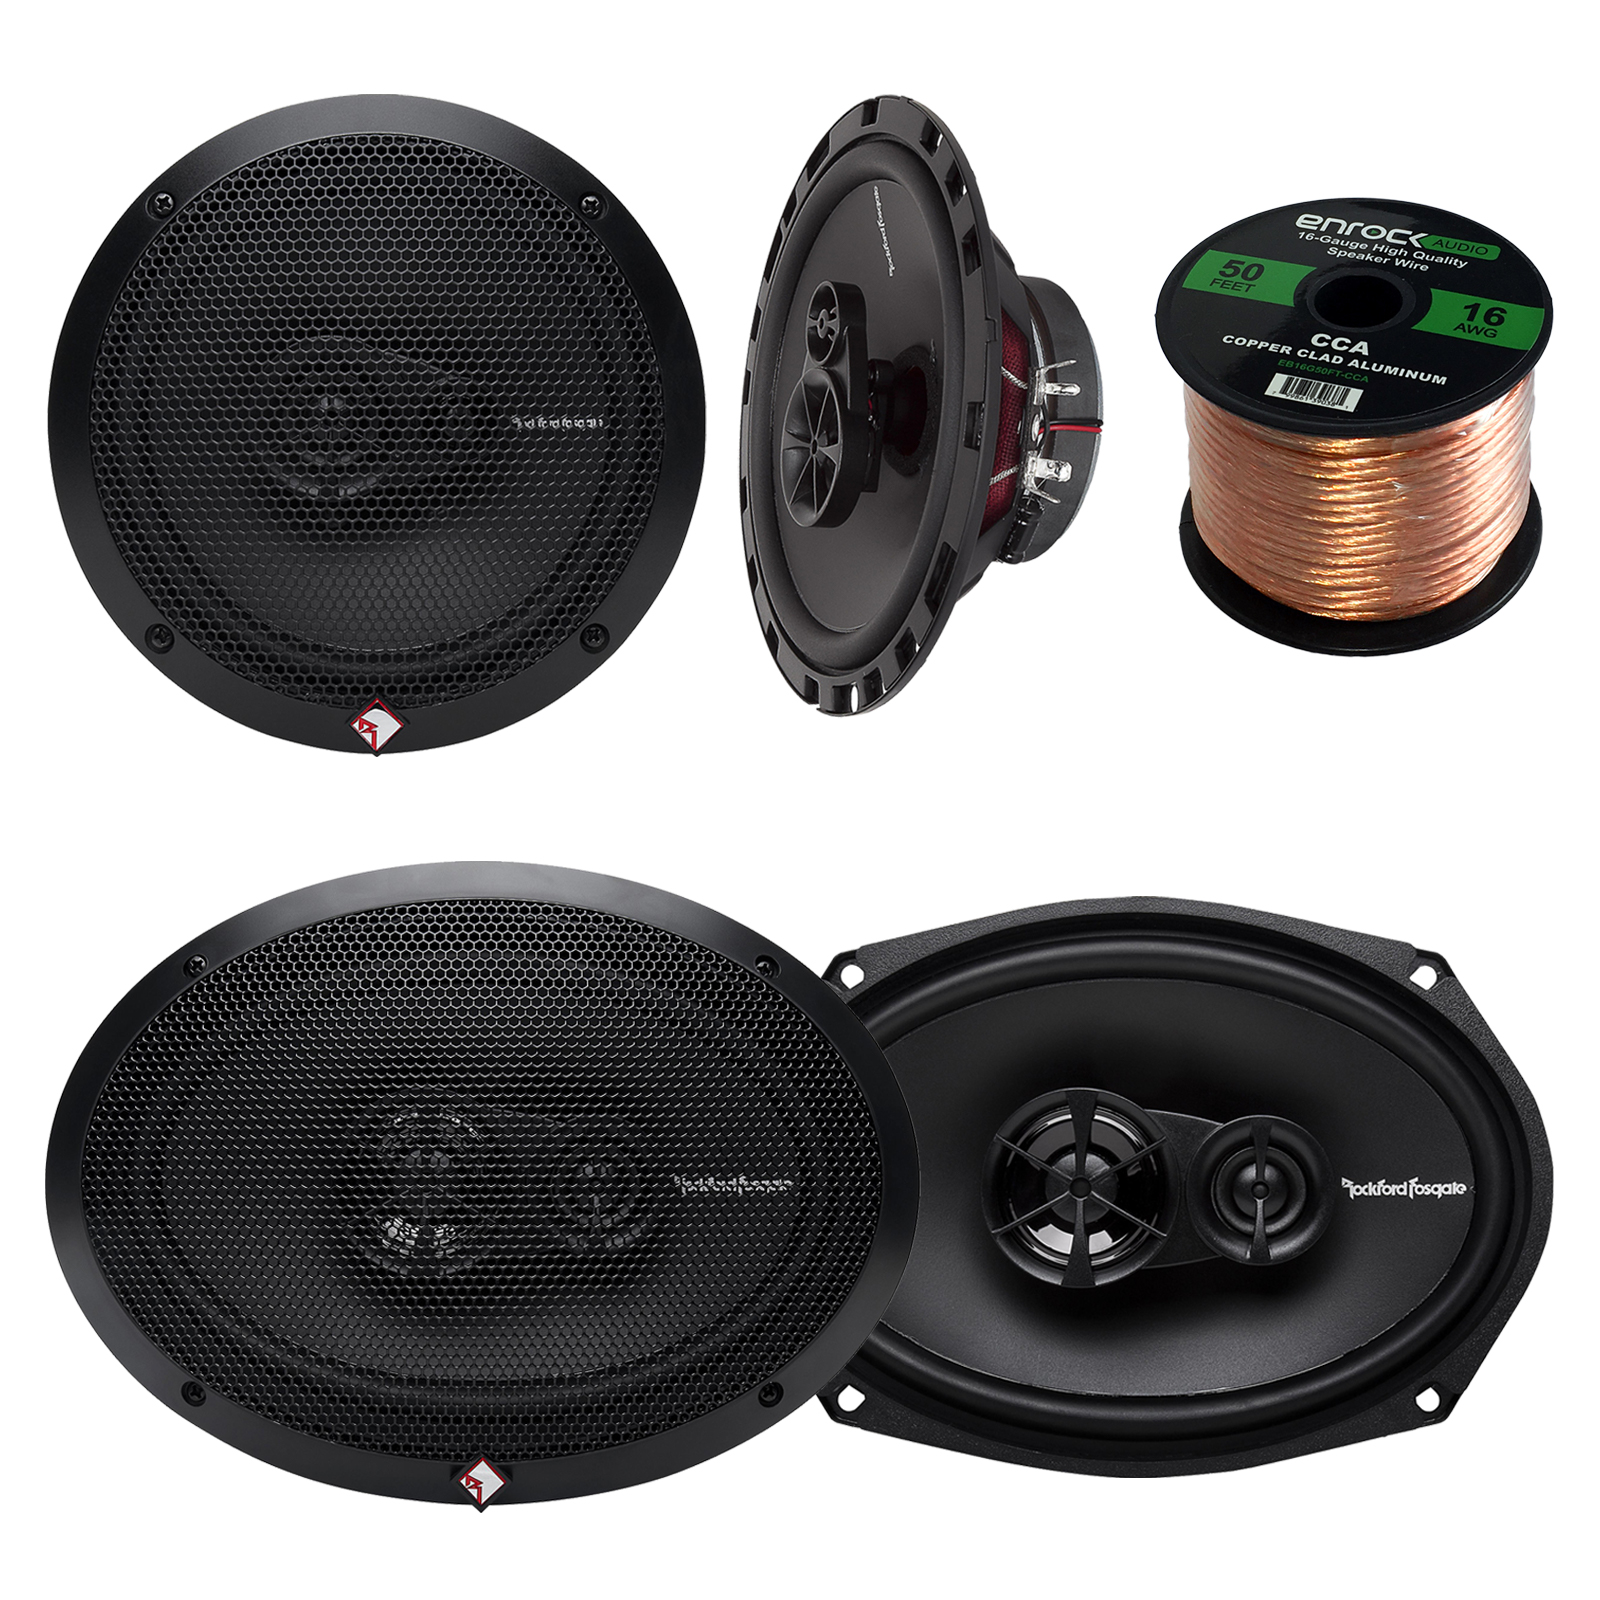 "Car Speaker Package of 2x Rockford Fosgate R165X3 Prime 6.5"" Inch 180 Watt 3-Way Full-Range Car Coaxial Speaker Bundle Combo With 2x R169X3 Prime 6x9"" Inch Audio Speakers + 50 Foot 16g Speaker Wire"